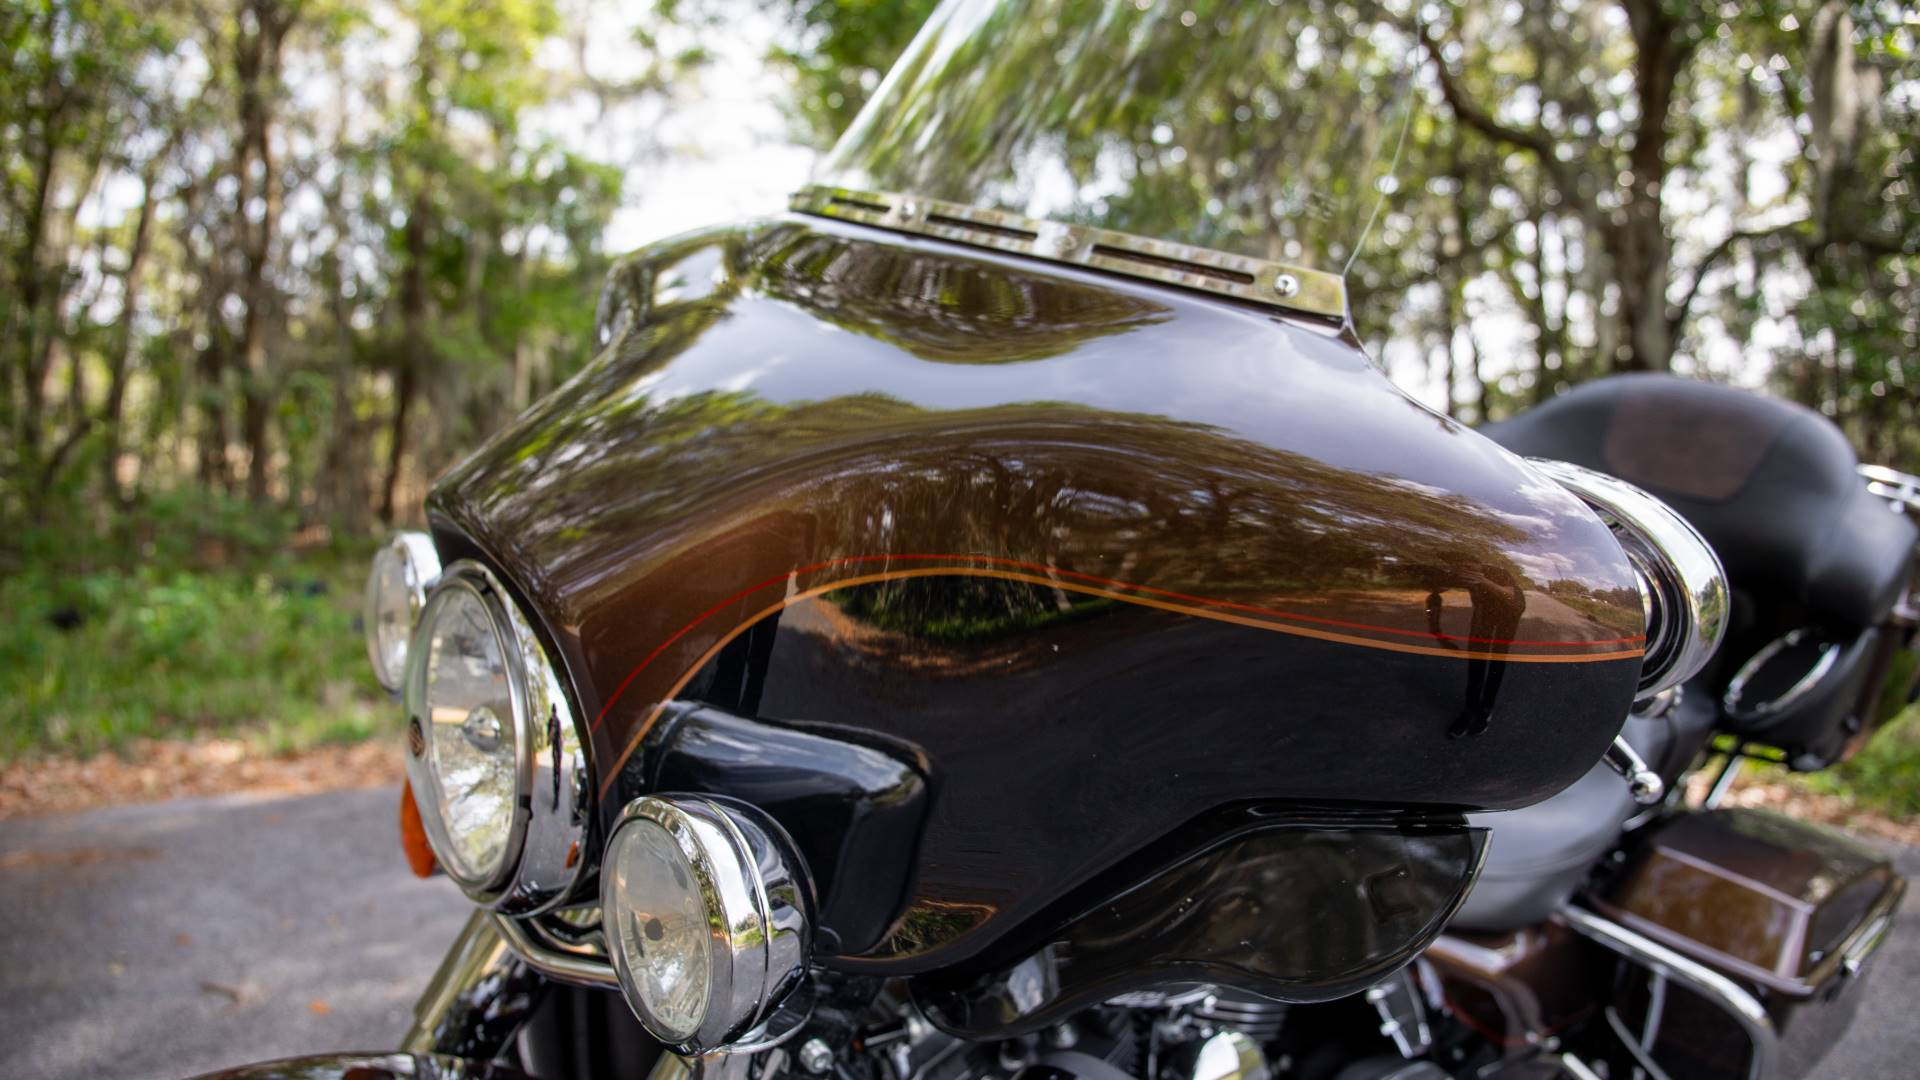 2013 Harley-Davidson Electra Glide® Ultra Limited 110th Anniversary Edition in Lakeland, Florida - Photo 39